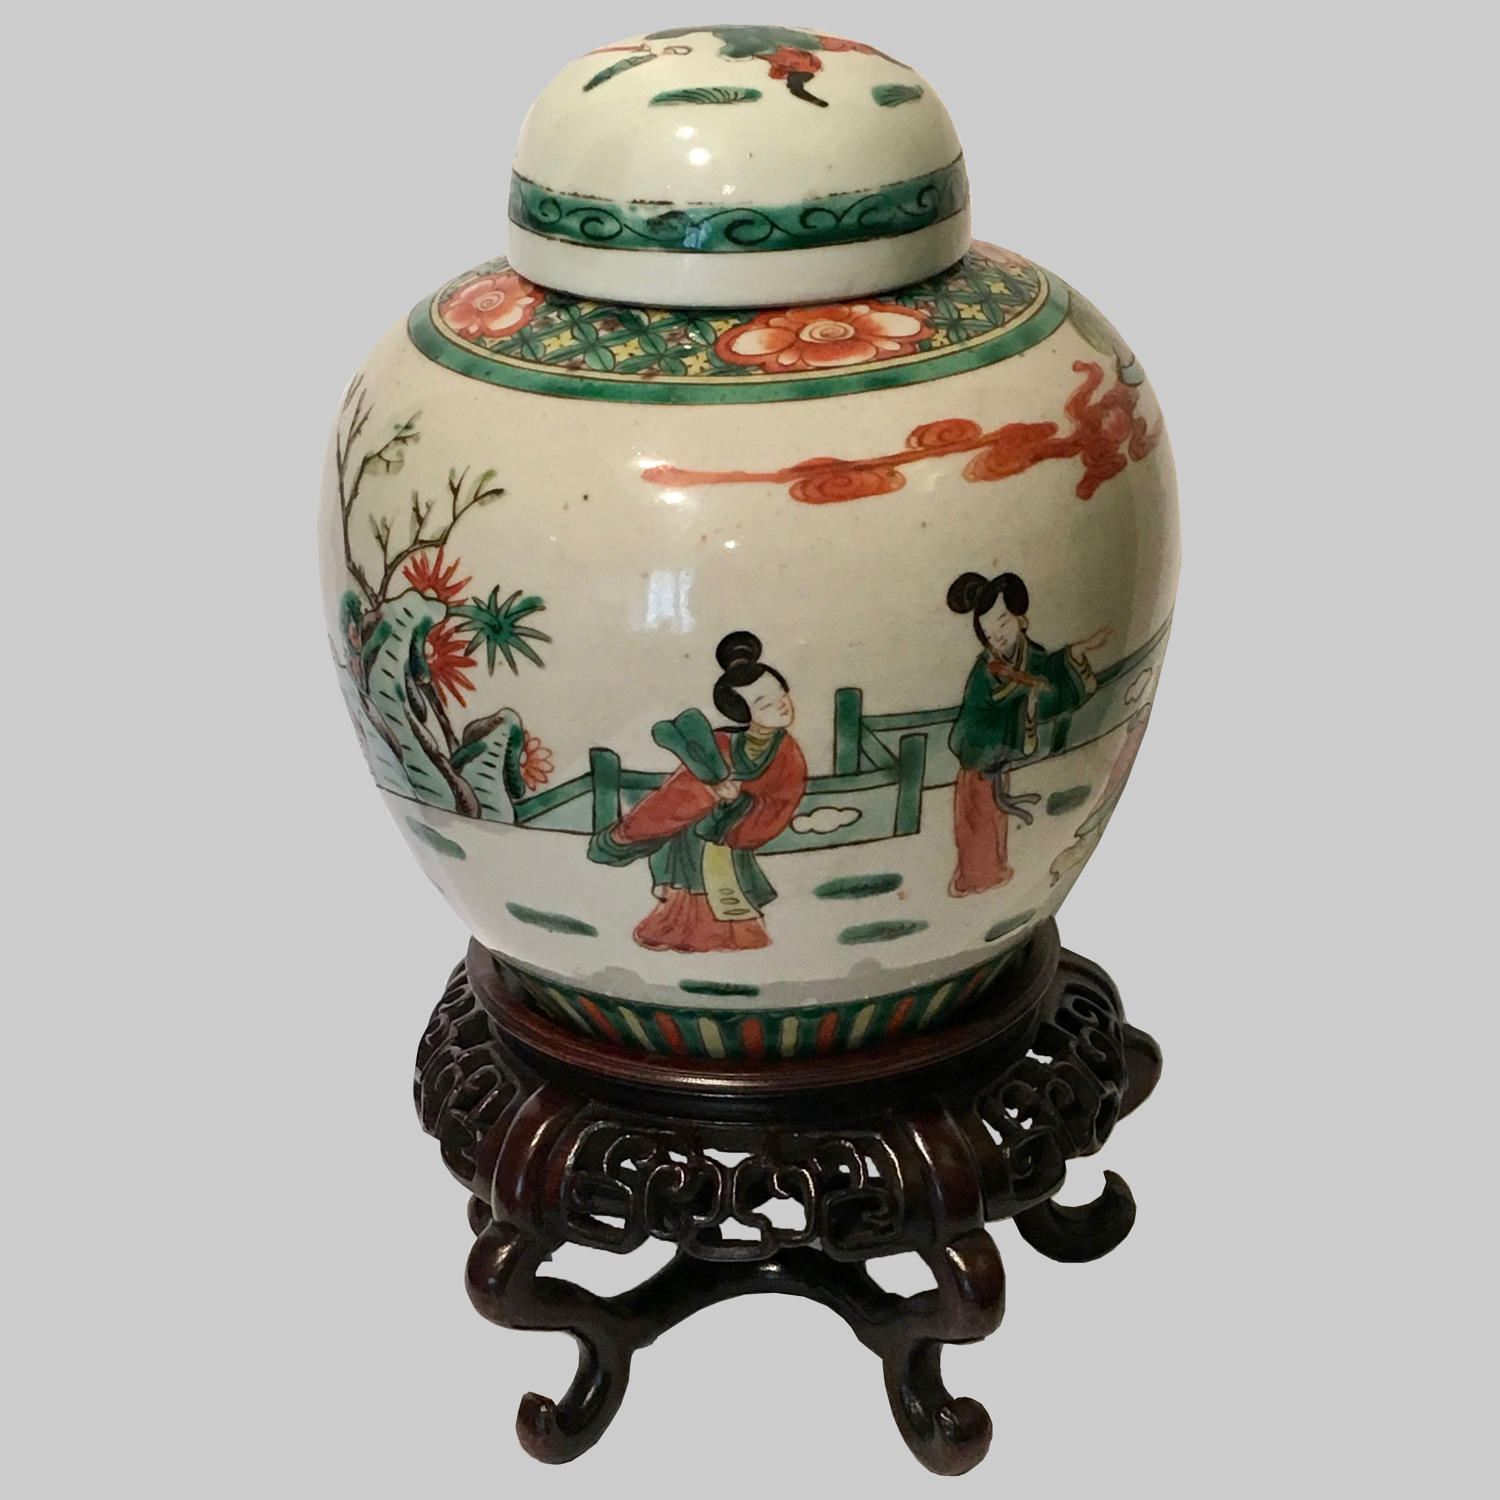 Chinese Export porcelain ginger jar